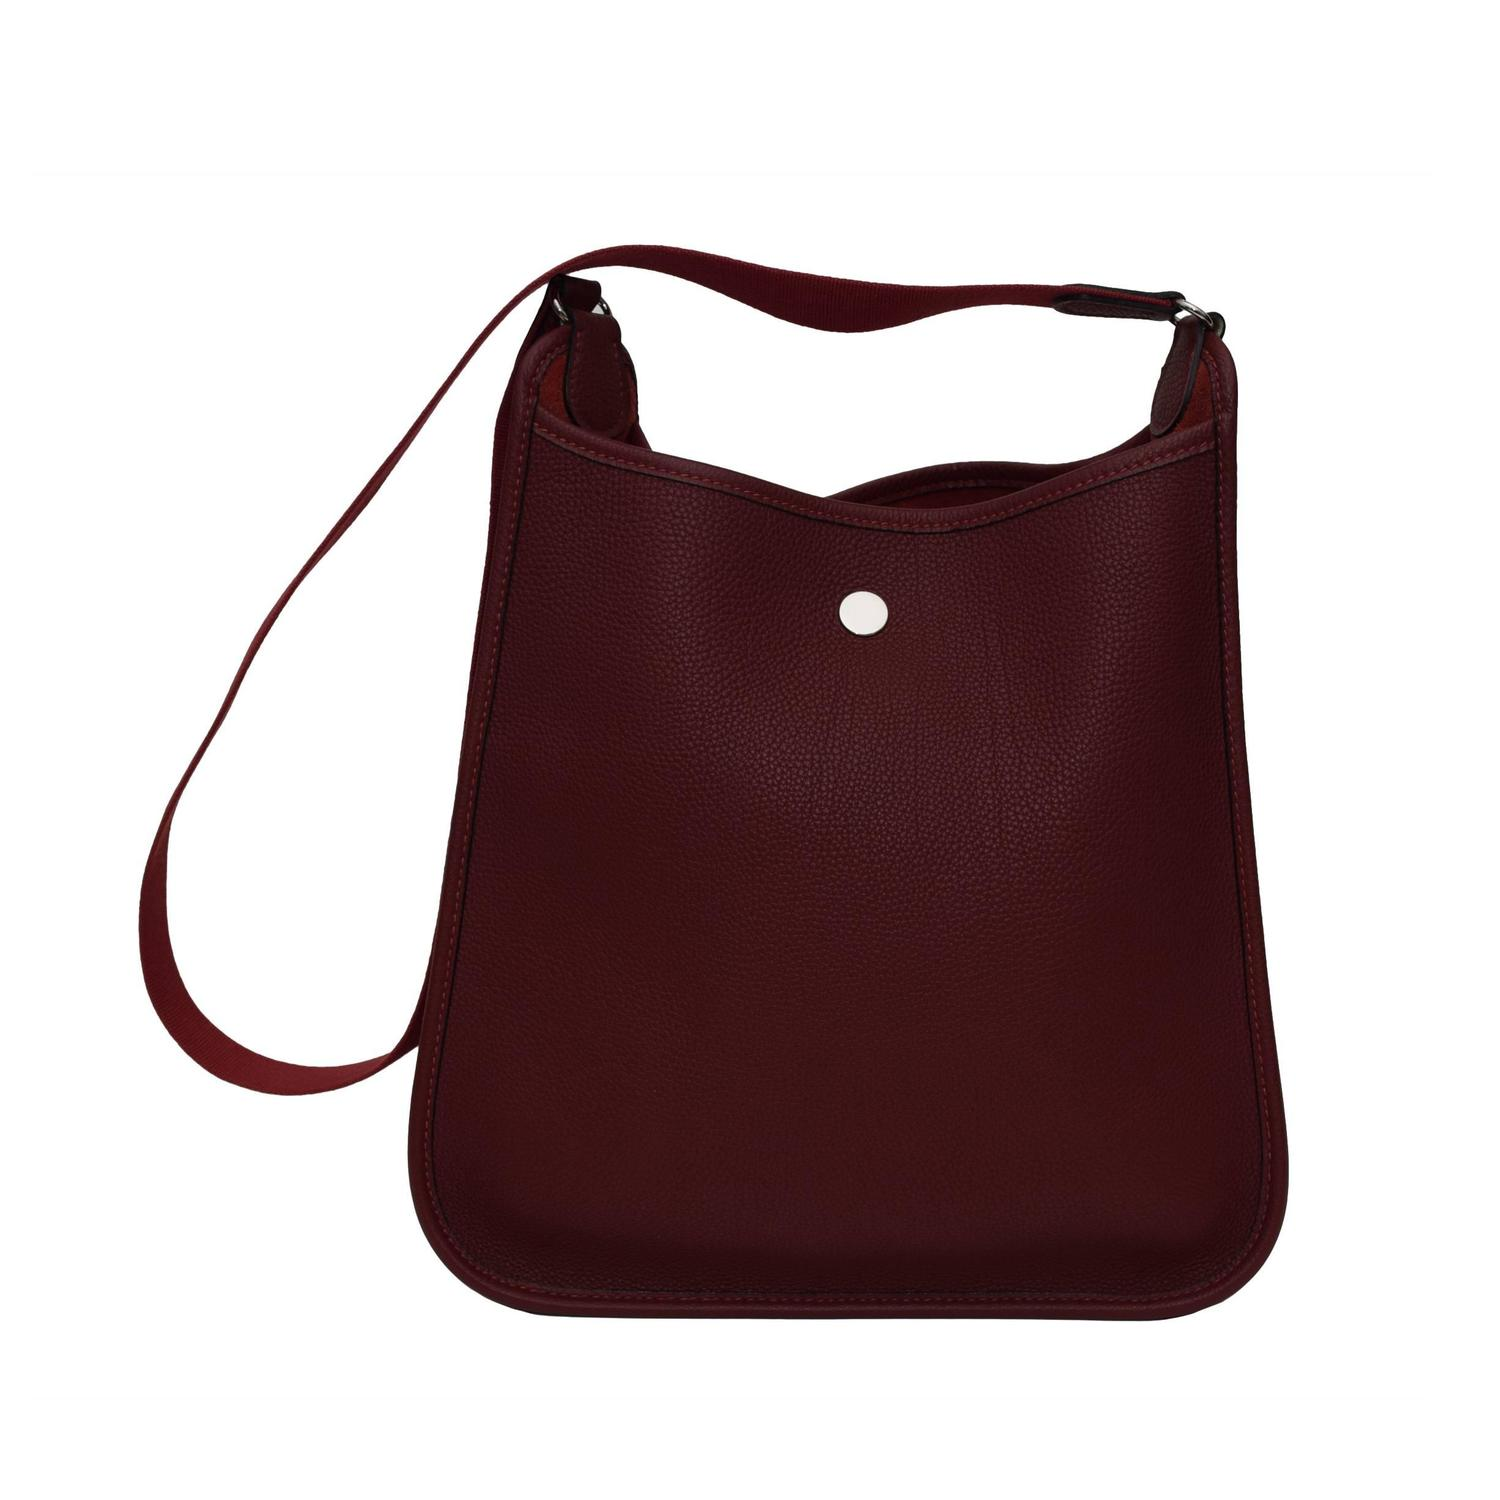 hermes bags cost - Hermes Vespa PM in Wine Red Color Shoulder Bag at 1stdibs